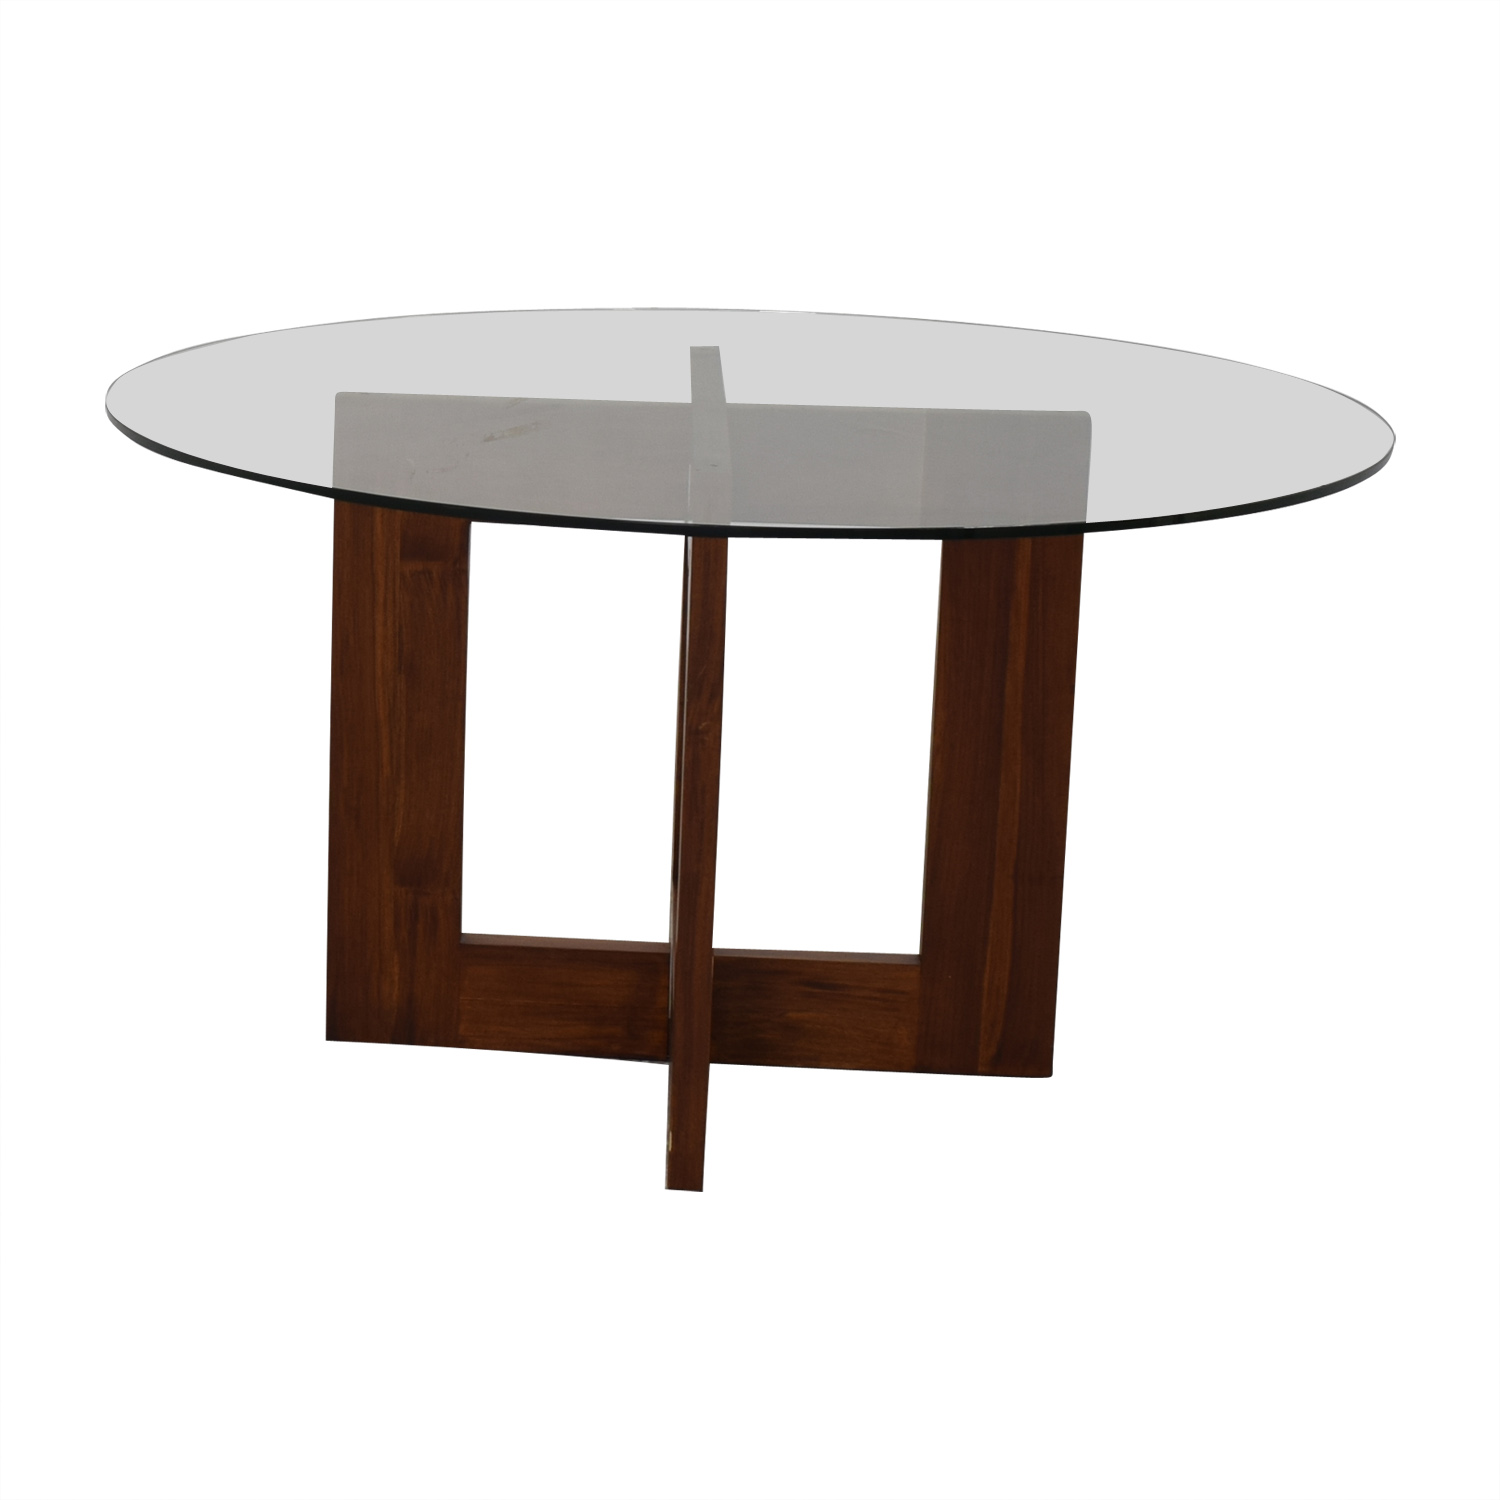 Crate & Barrel Crate & Barrel Round Glass Table coupon